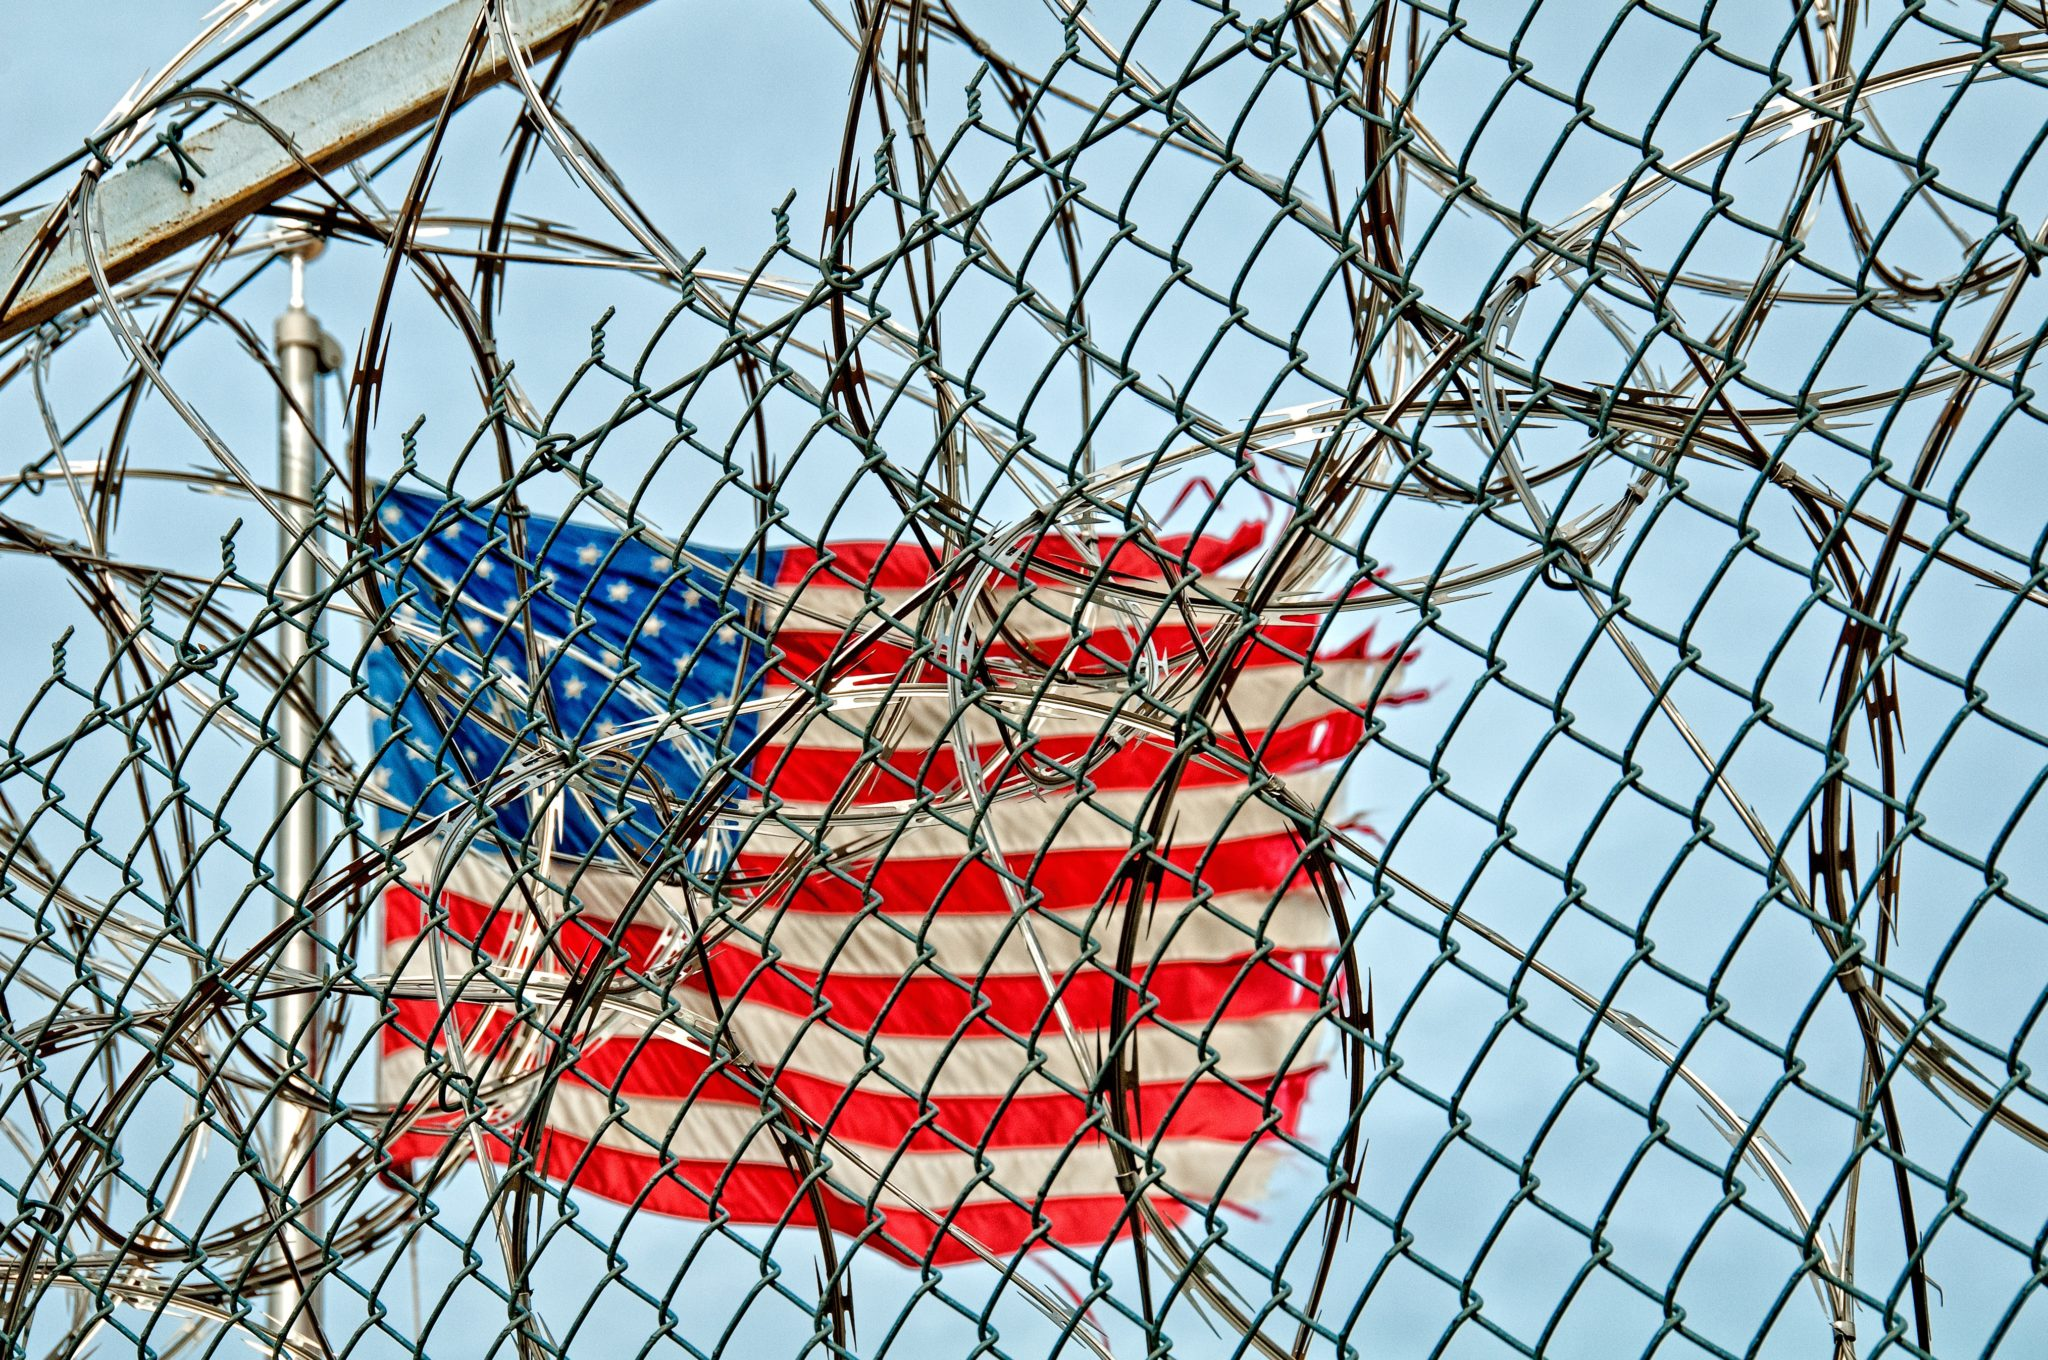 American flag behind barbed wire fence | Teenzone